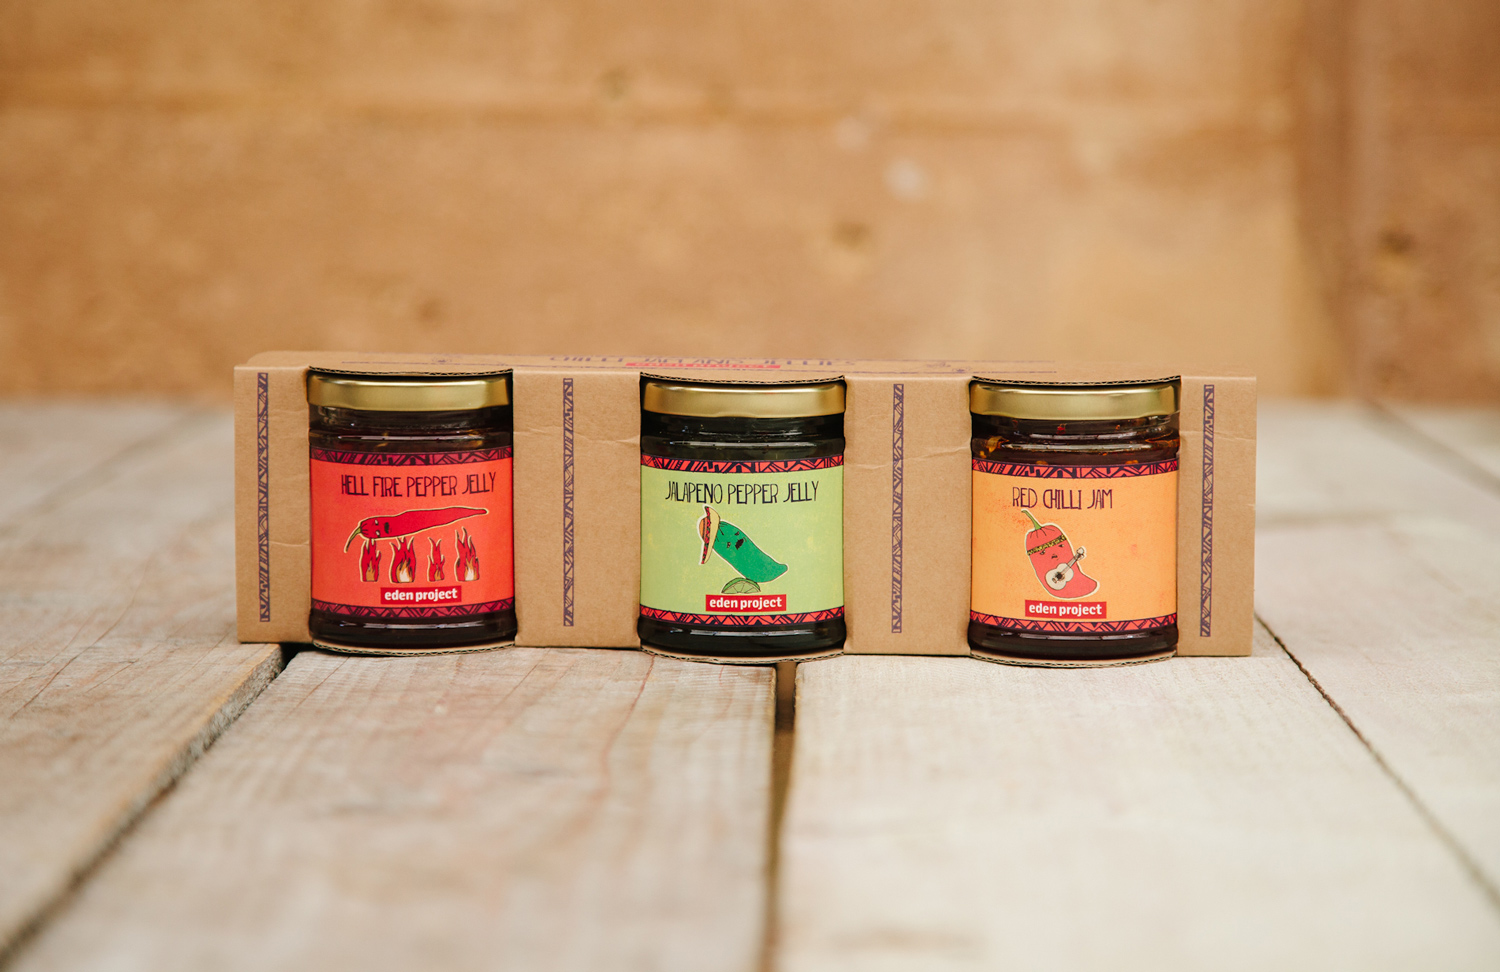 Eden Project Chilli Jelly and Jam packaging design, illustration